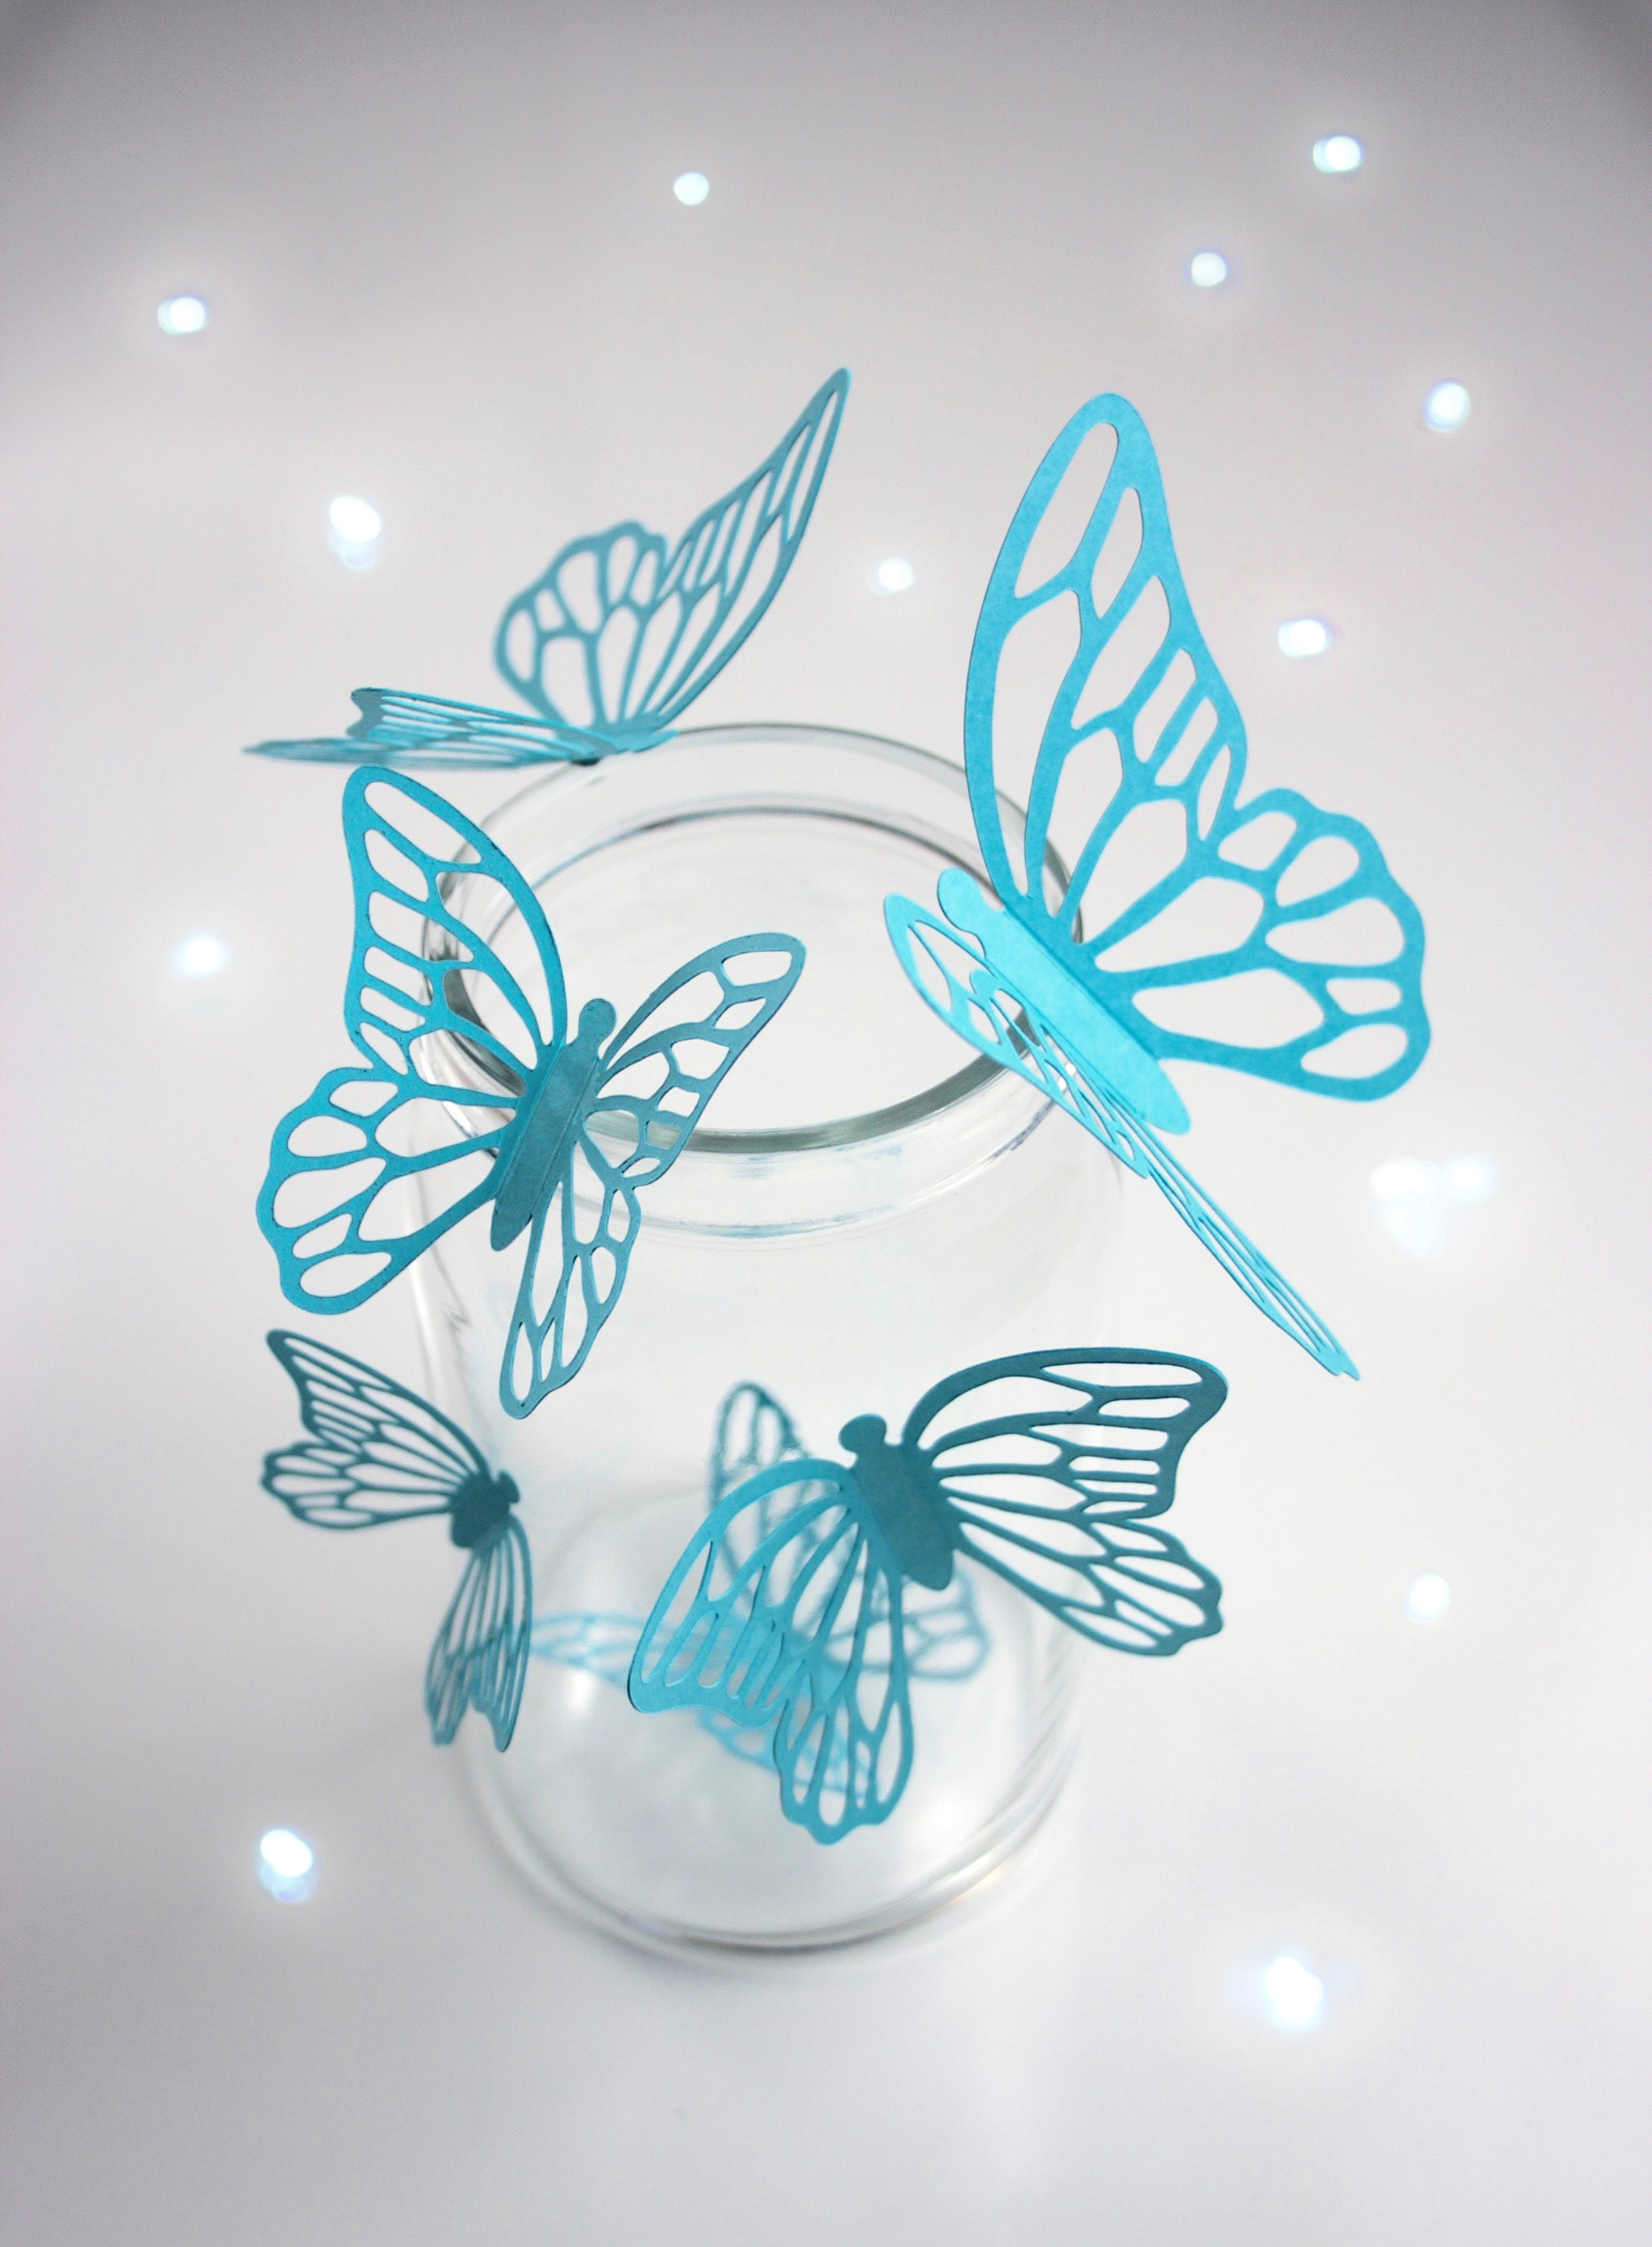 Butterfly Stickers, AQUA, Butterfly Decals, Butterfly Wall Stickers,  Butterfly 3D Stickers,